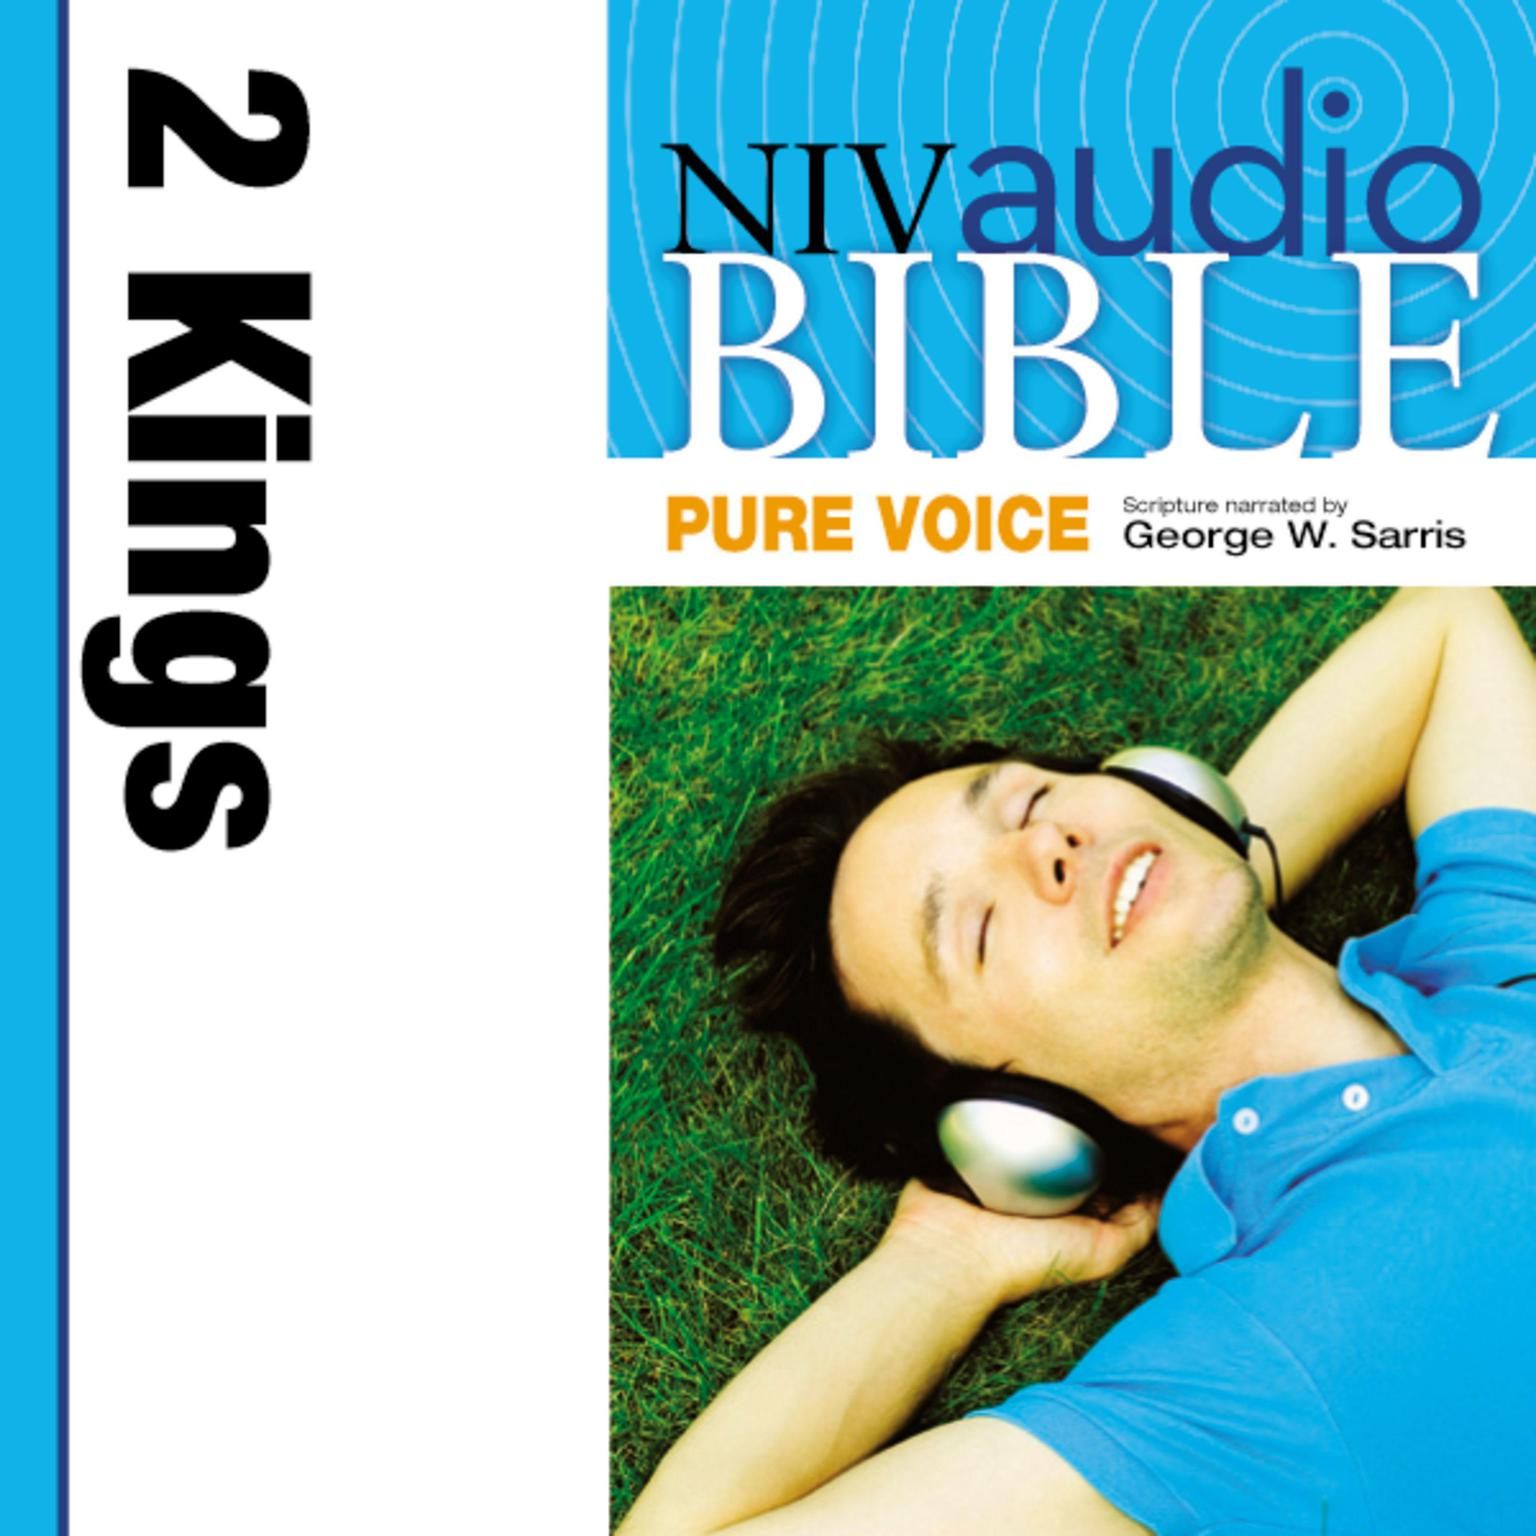 Printable NIV, Audio Bible, Pure Voice: 2 Kings, Audio Download (Narrated by George W. Sarris): 2 Kings Audiobook Cover Art